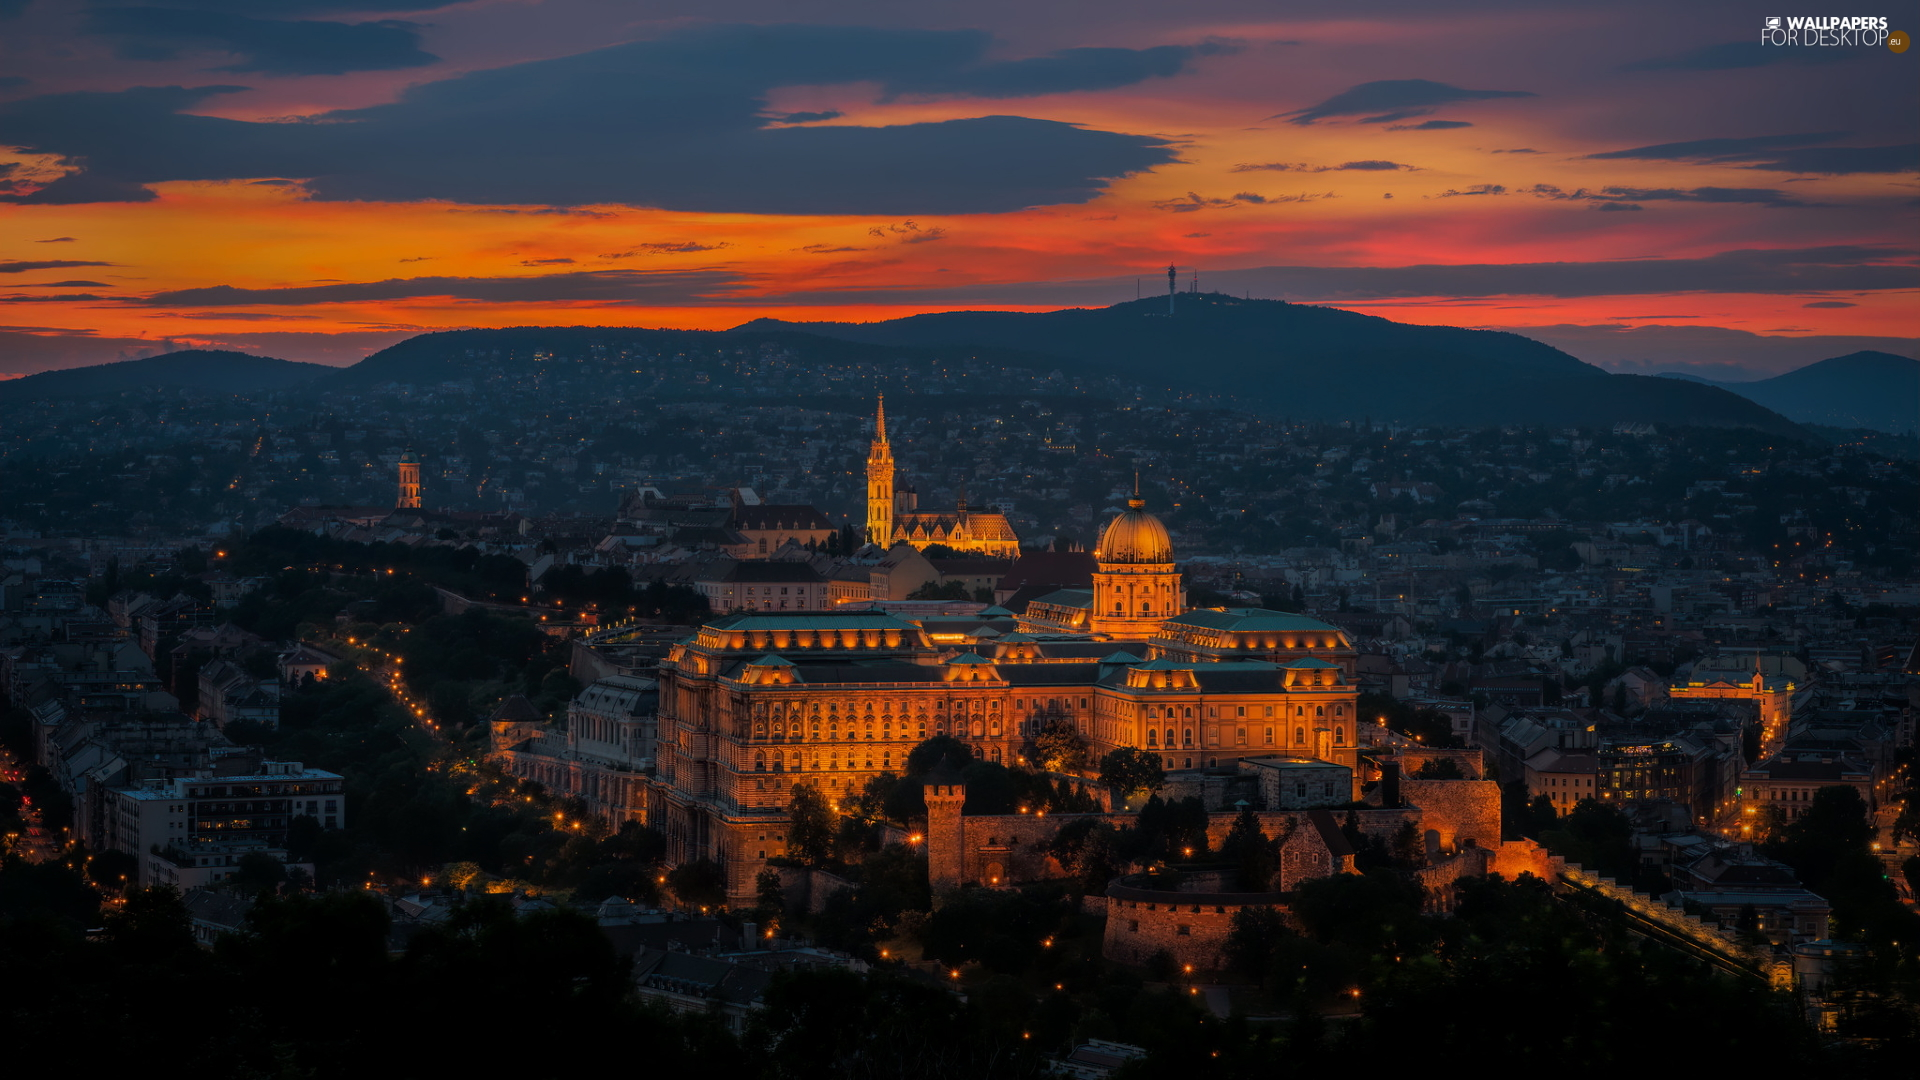 The Royal Castle, Great Sunsets, Budapest, Hungary, The Hills, Floodlit